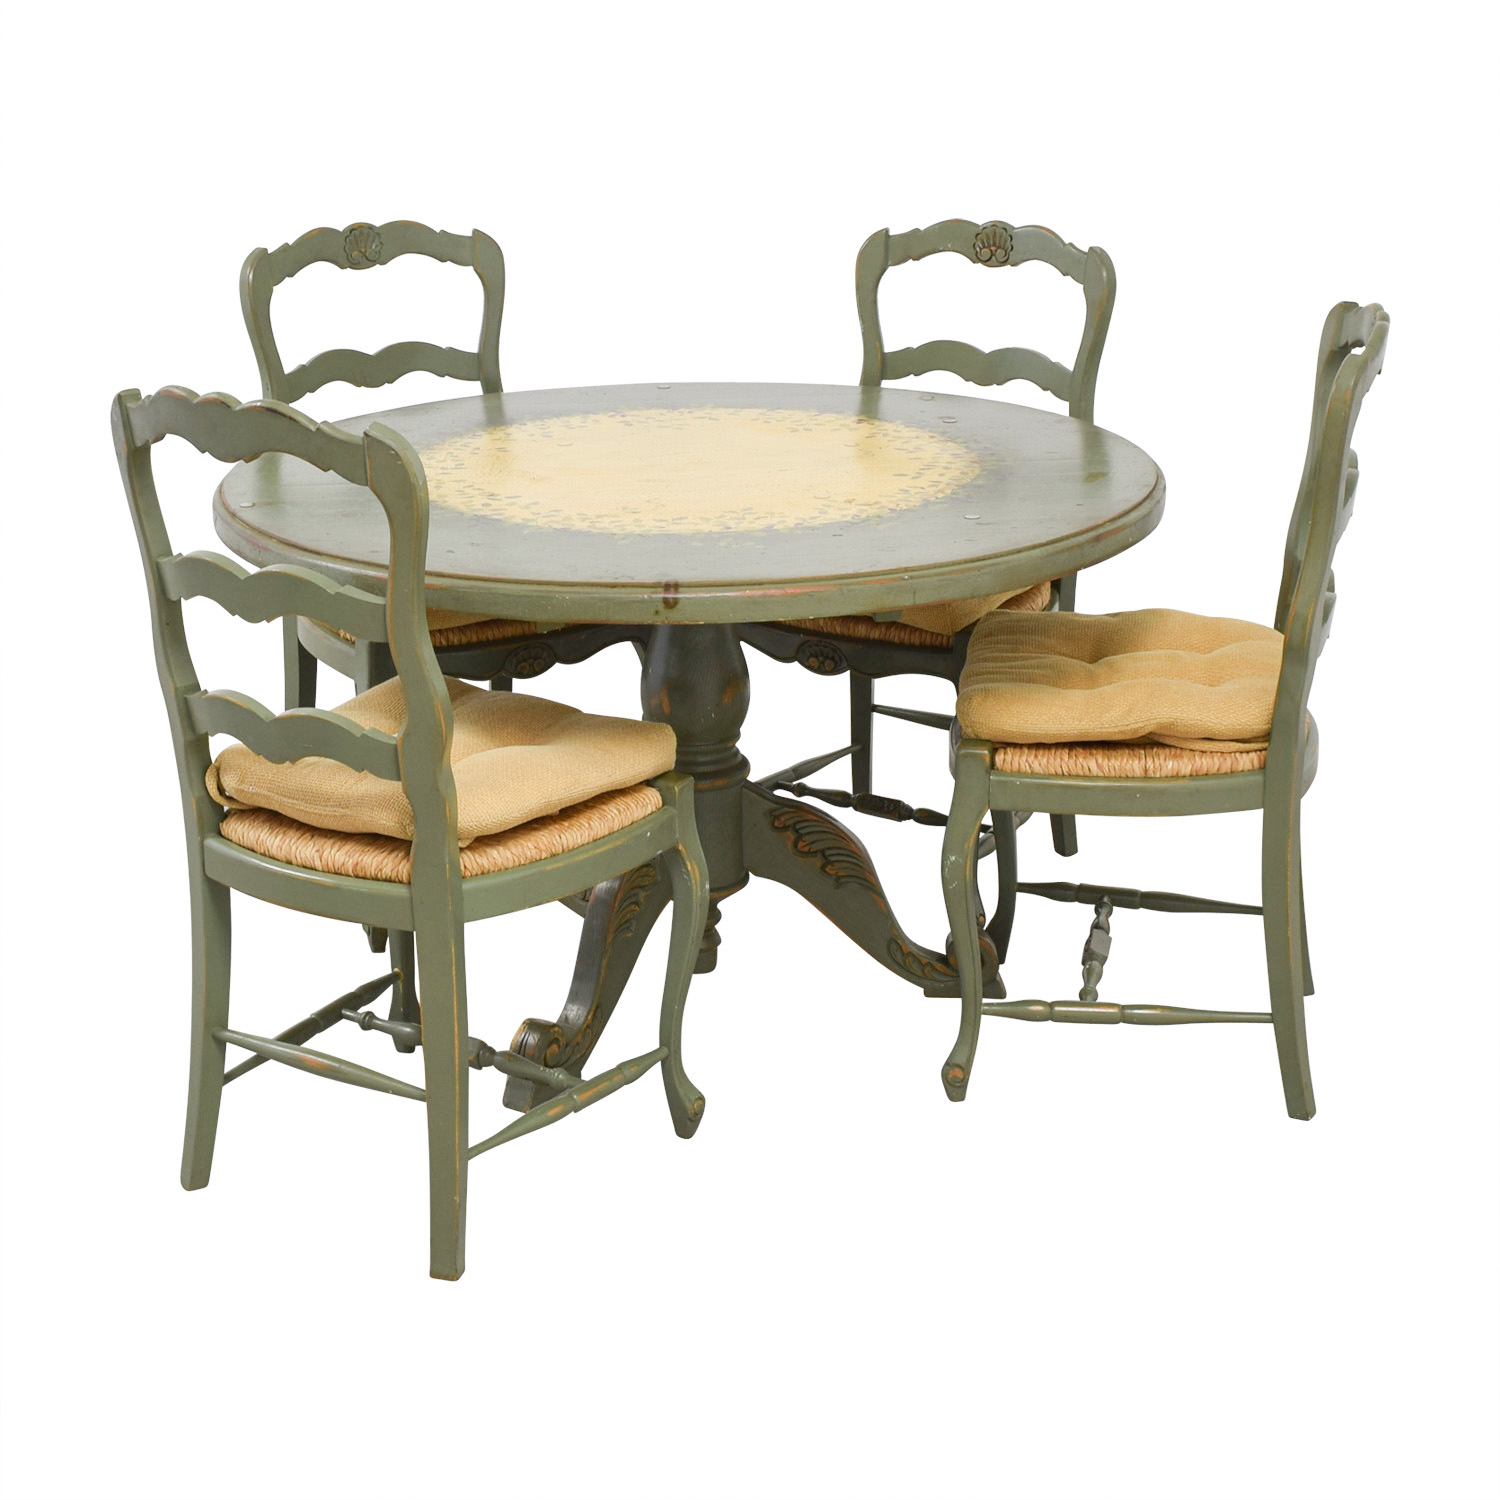 Country Kitchen Table: Hand Painted Country Style Kitchen Table And